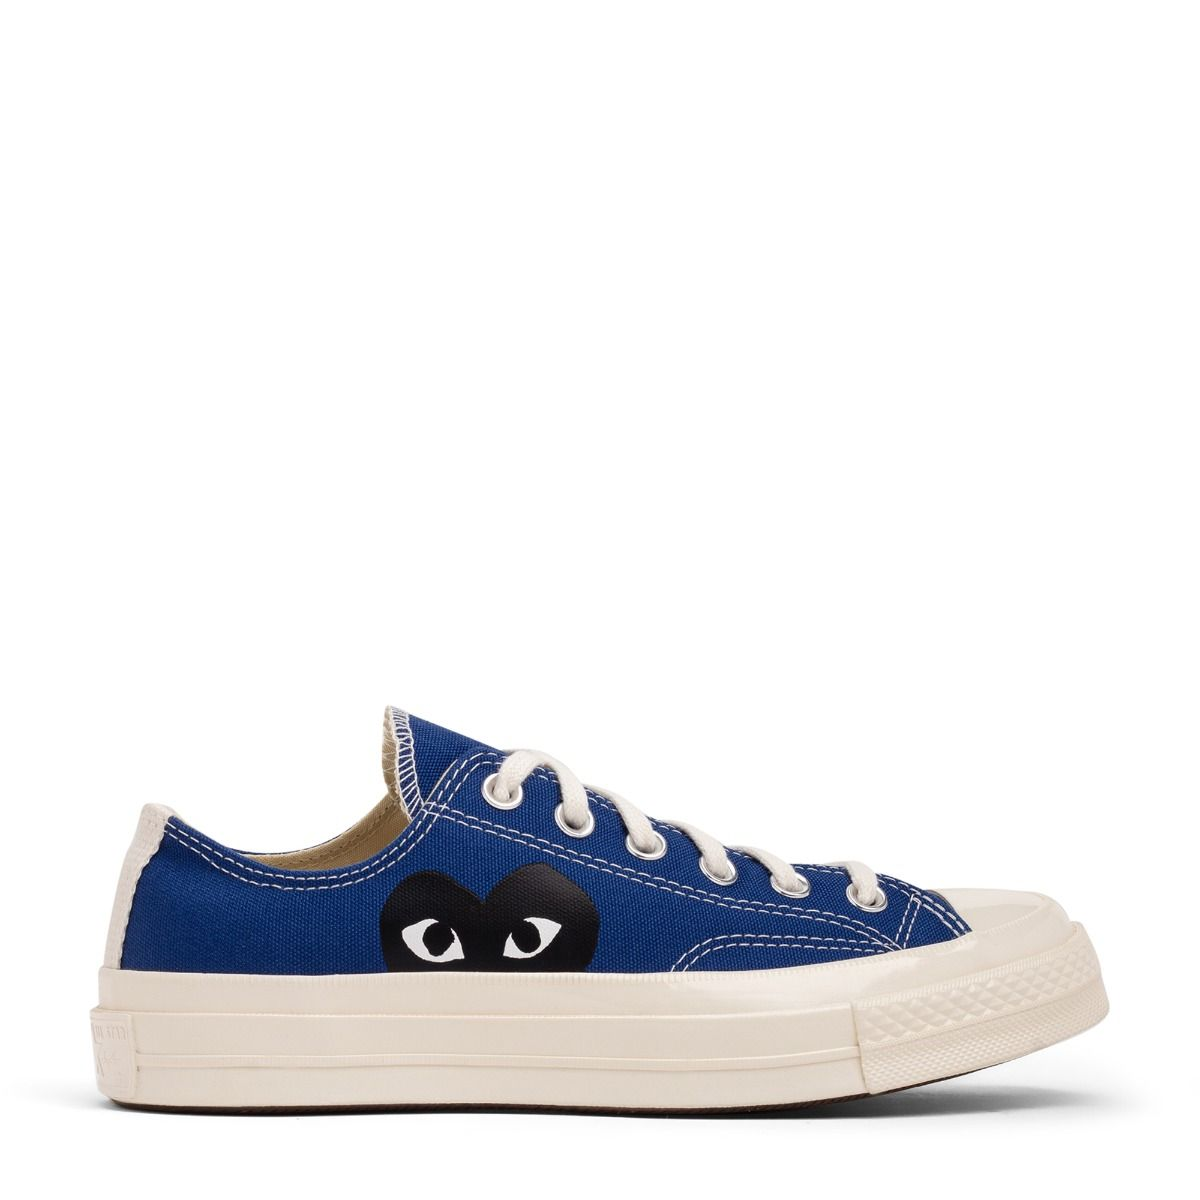 PLAY X Converse sneakers